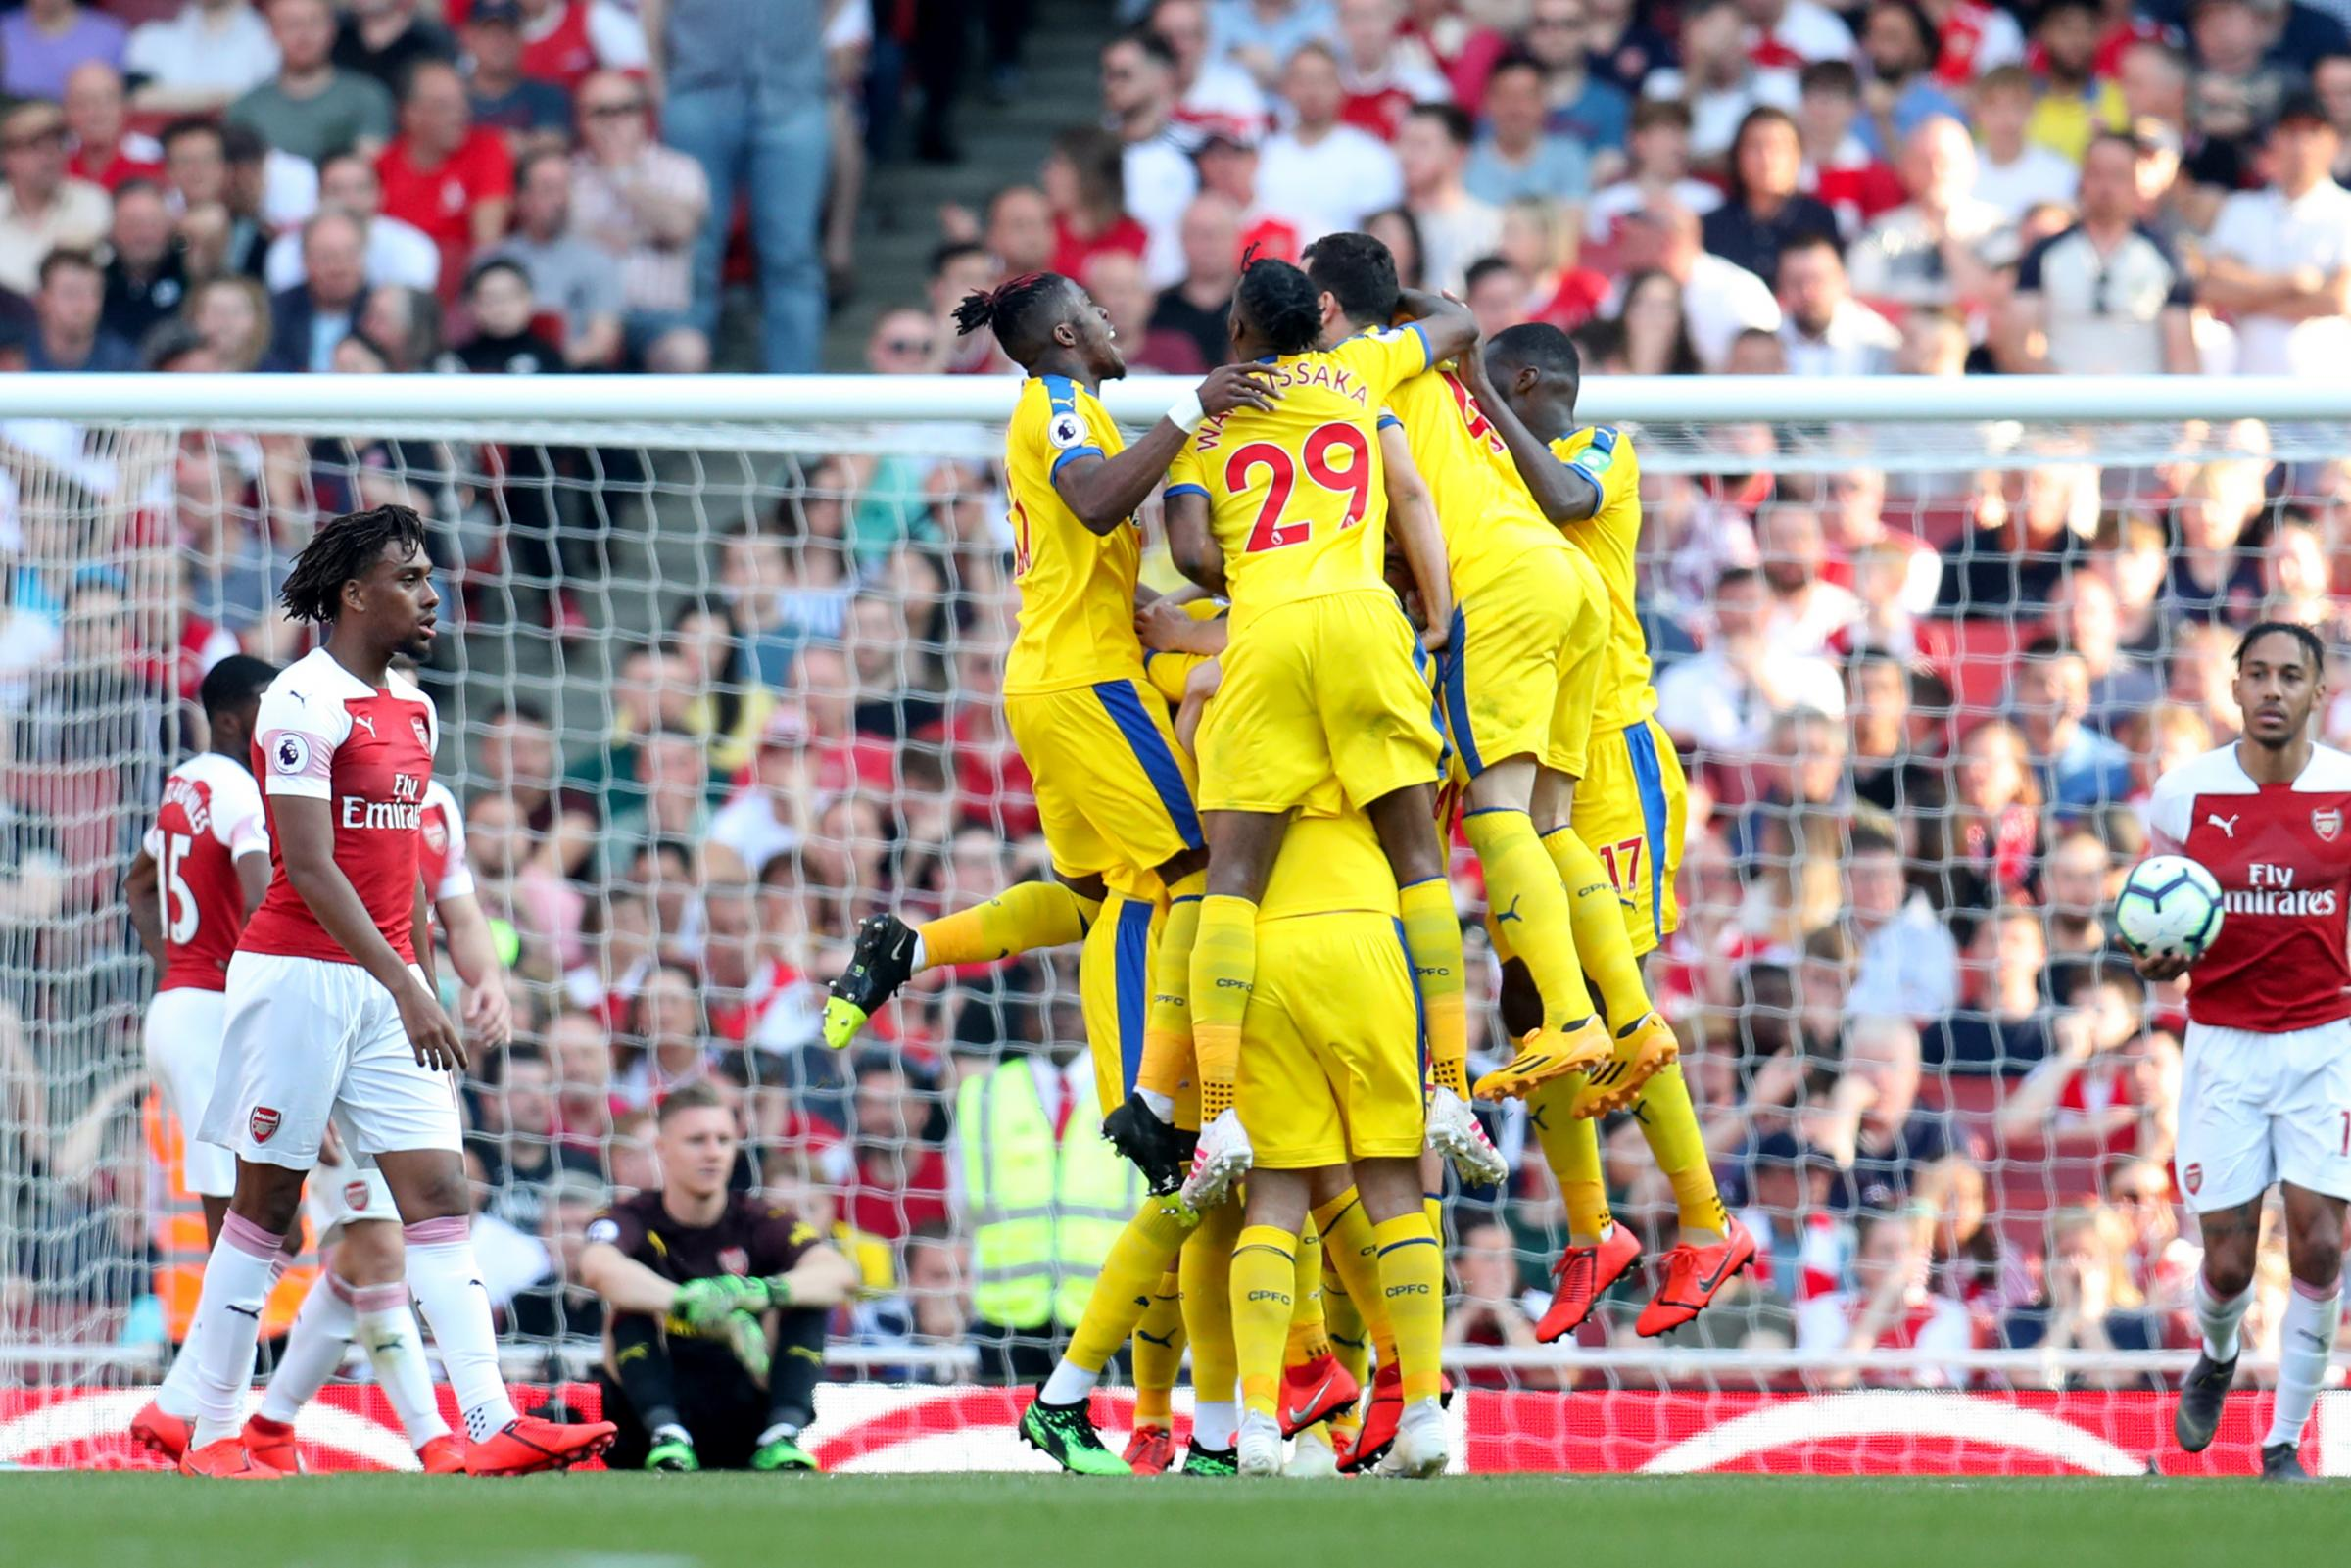 Player ratings from Palace's 3-2 win over Arsenal - who's back to his best?